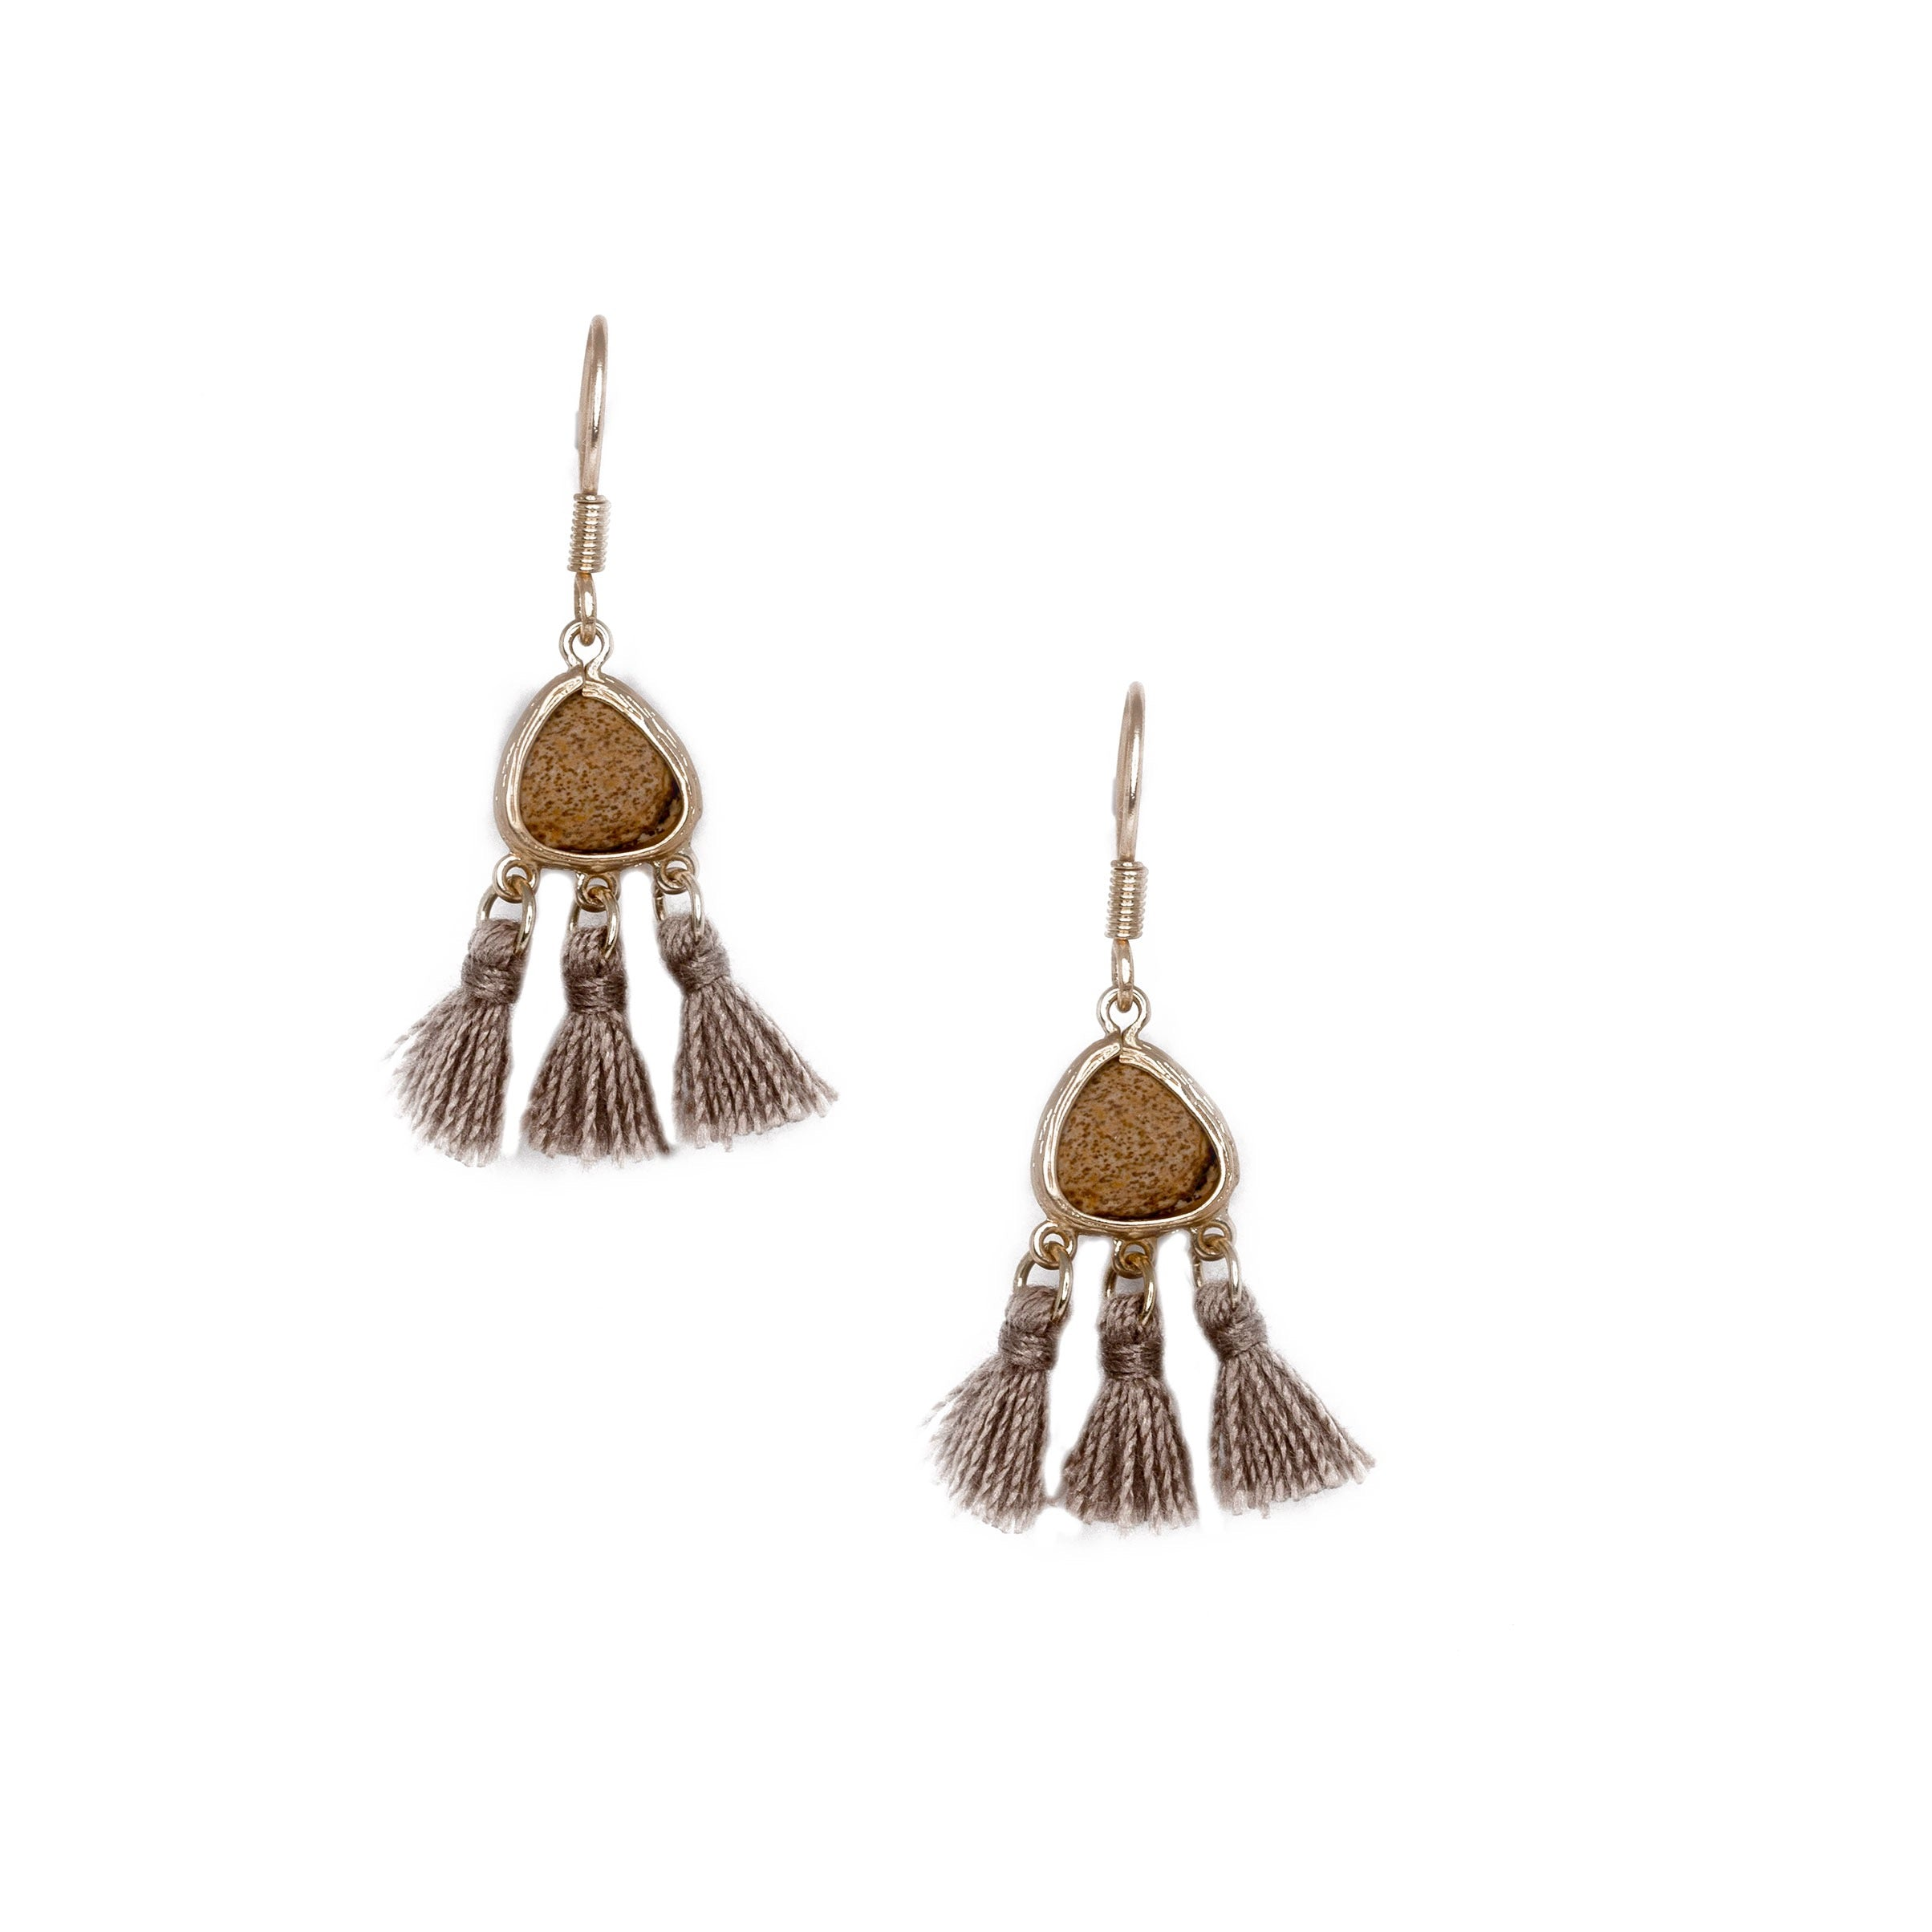 tan mini tassel earrings with stone